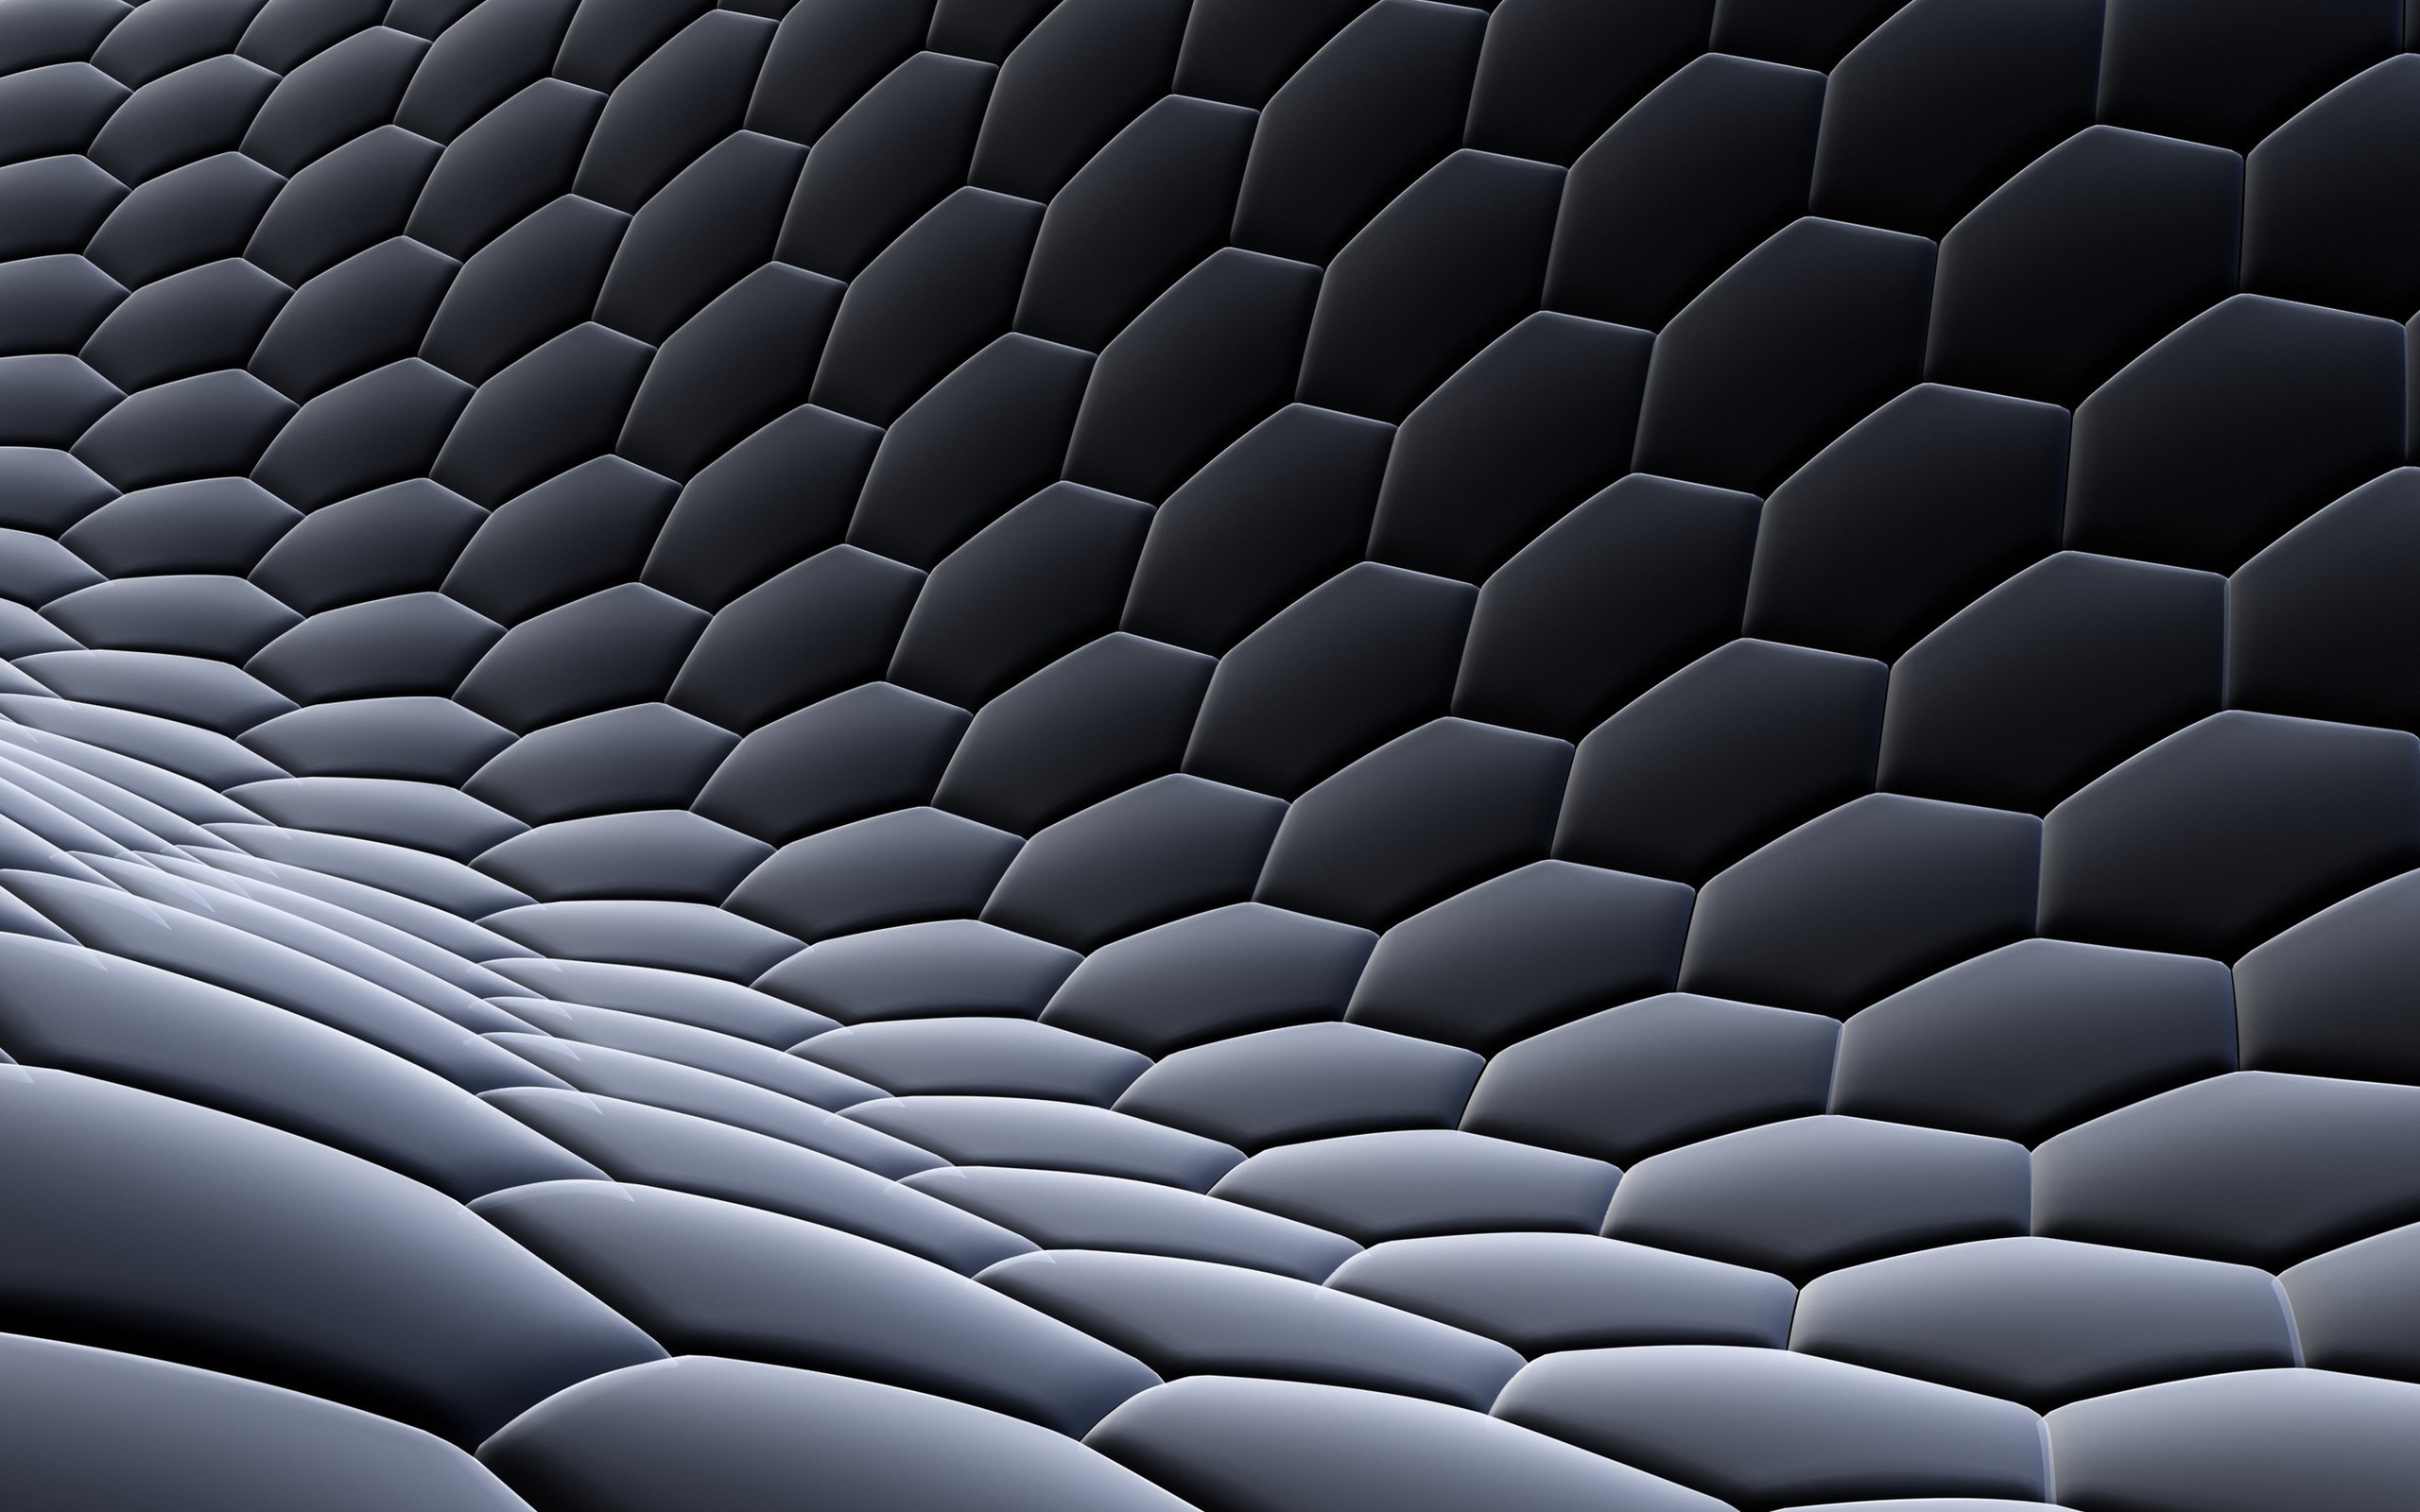 Honeycomb wallpapers background images page 6 - 2560x1600 Black Honeycomb Background Wallpapers Hd Free 454783